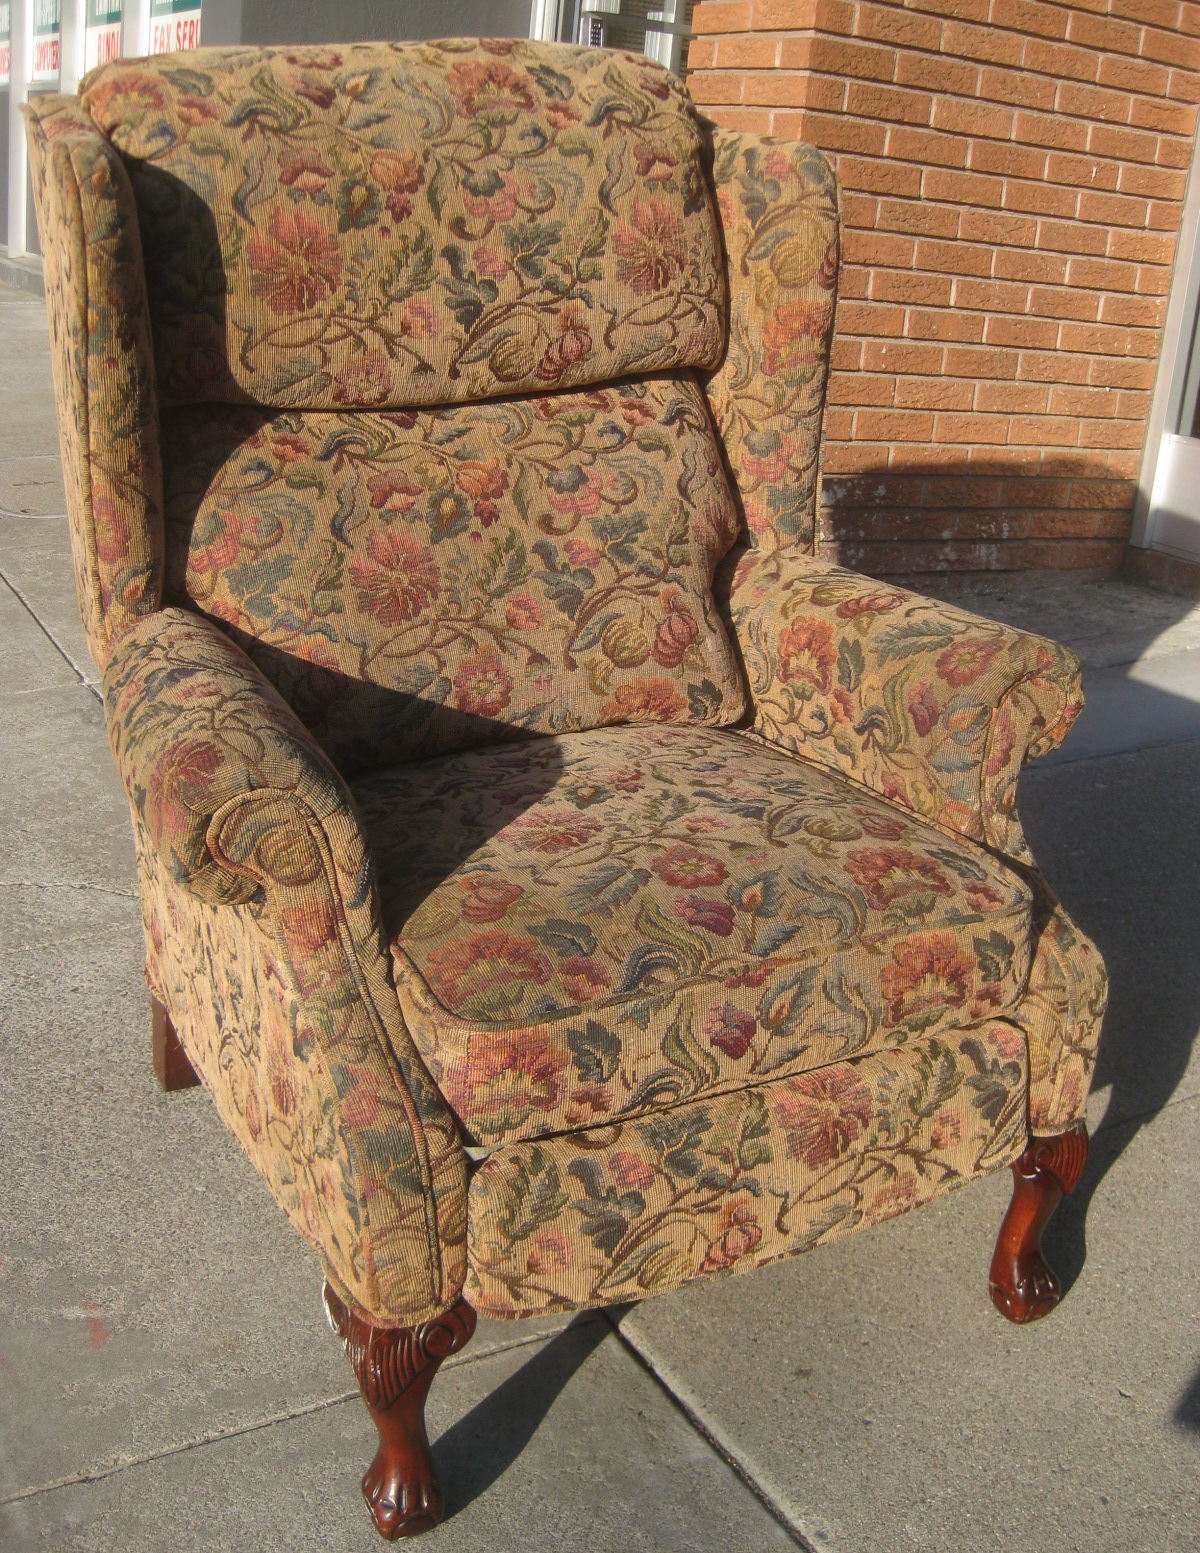 UHURU FURNITURE & COLLECTIBLES: SOLD - Wingback Recliner